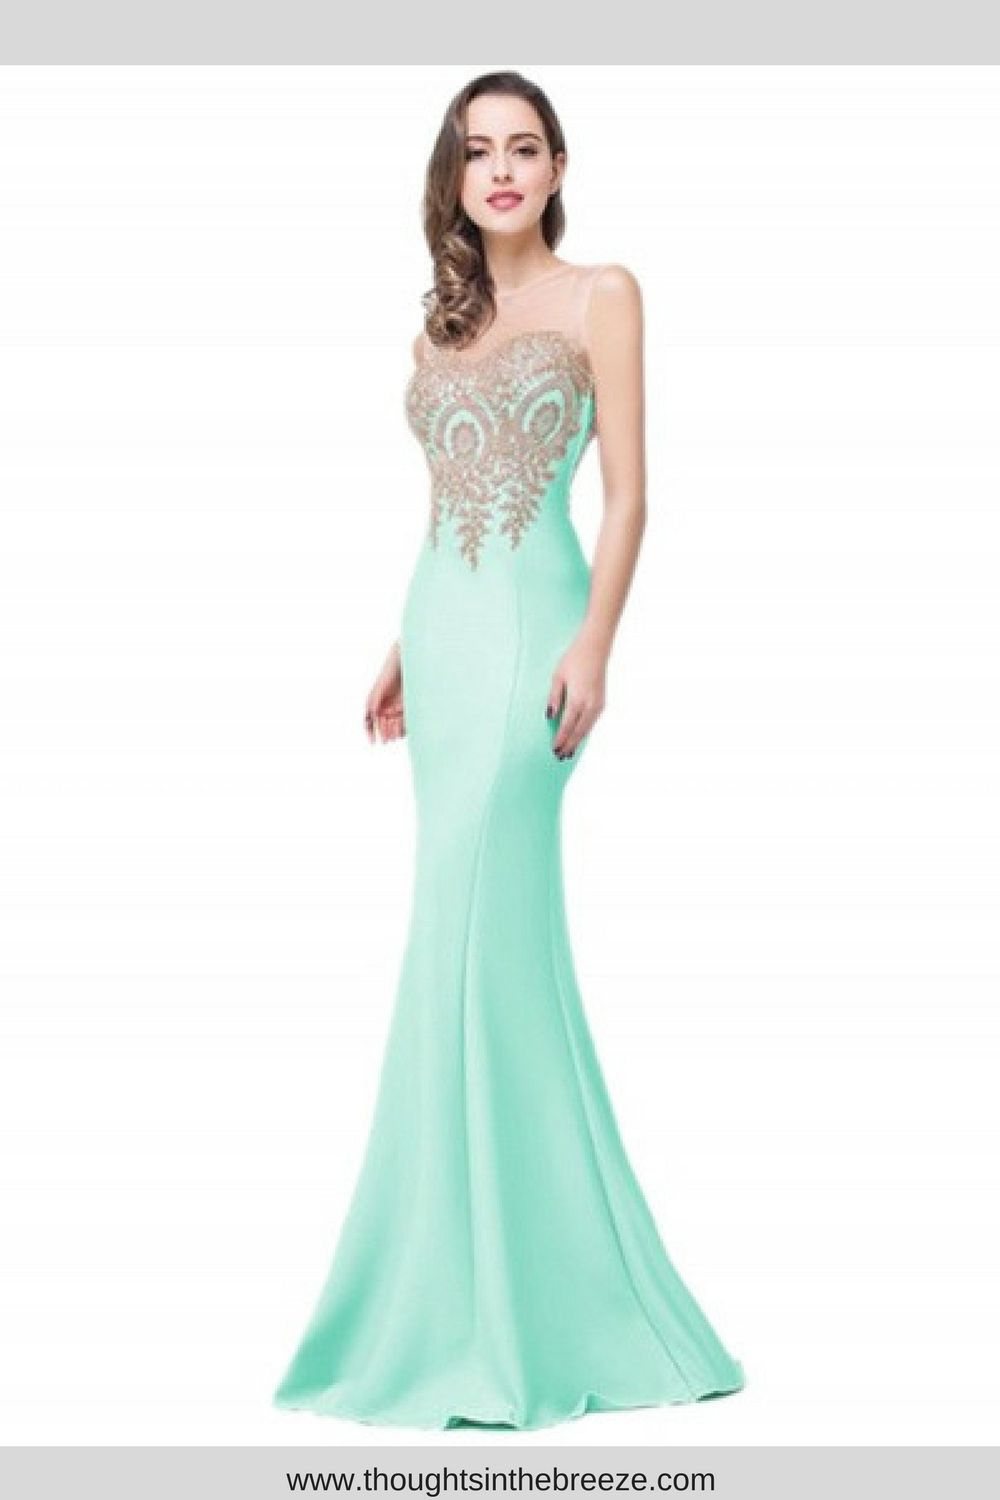 Womenus floral lace paneled mermaid prom dress looking for an